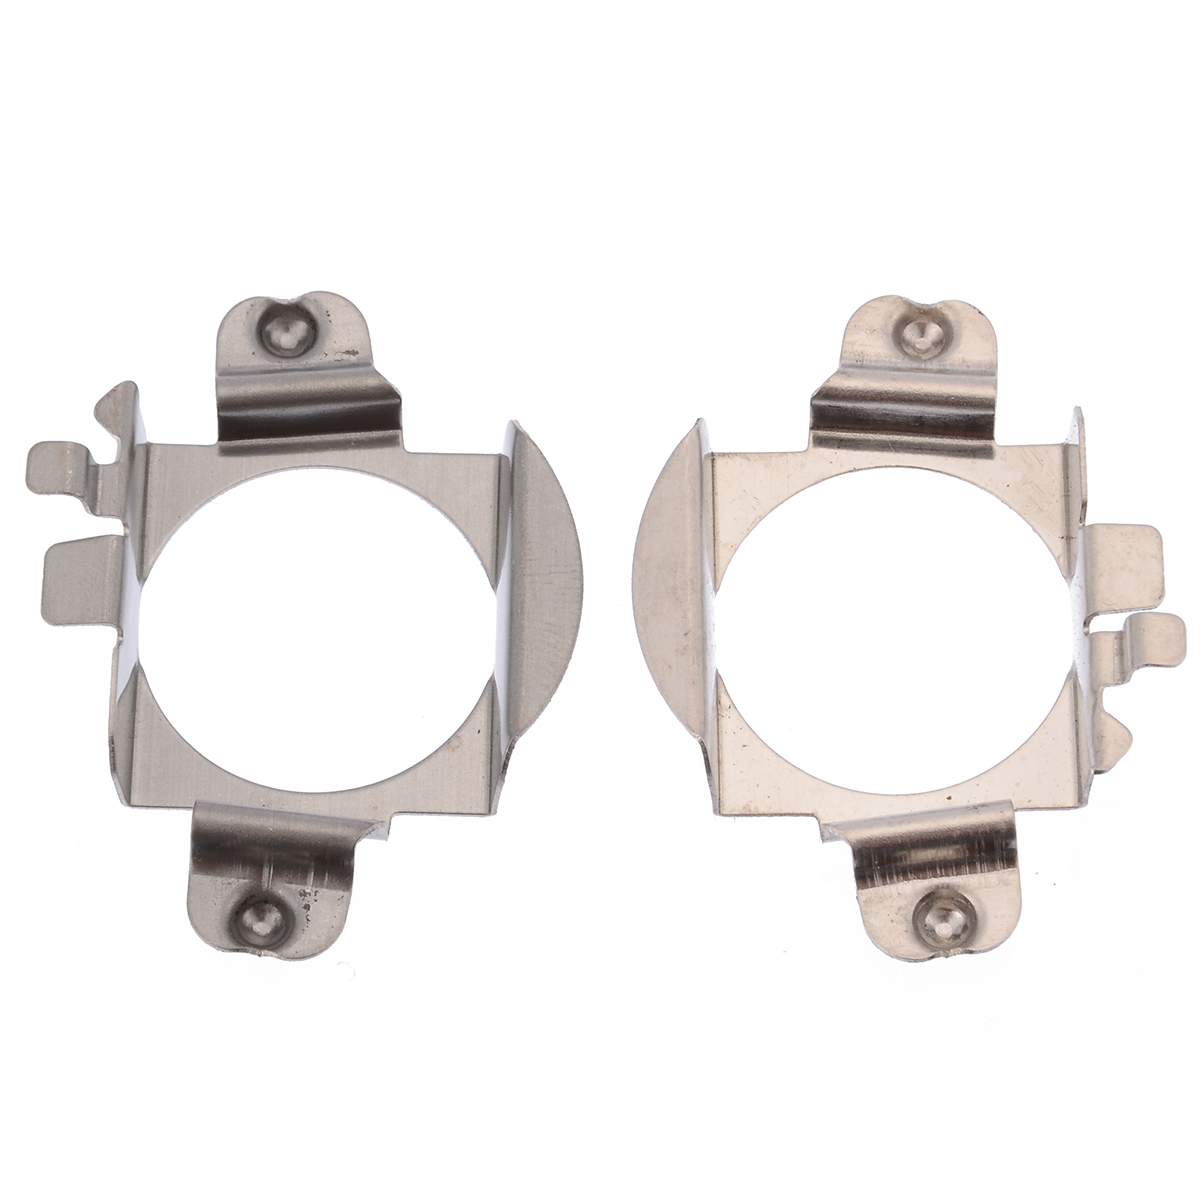 For Ford Edge Mercedes Benz 2pcs H7 LED Headlight Lamp Bulb Adapter Retainer Holder Stainless Steel Support B/C/ML Class MayitrFor Ford Edge Mercedes Benz 2pcs H7 LED Headlight Lamp Bulb Adapter Retainer Holder Stainless Steel Support B/C/ML Class Mayitr